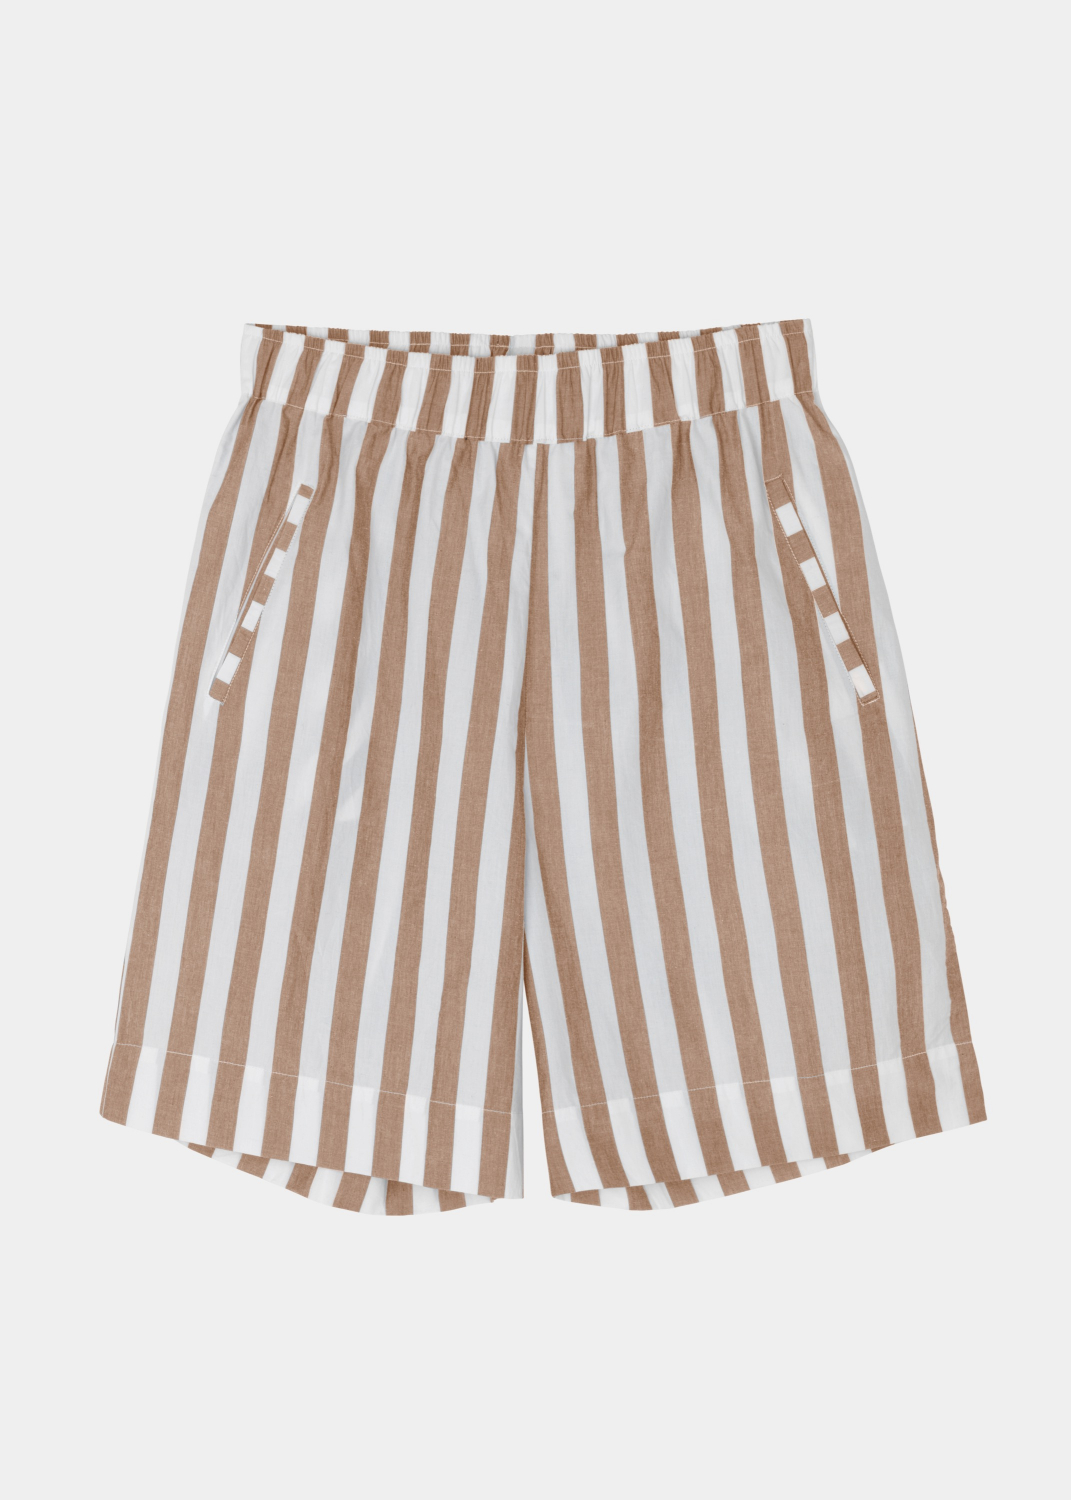 The Circle Collection - Circle Wide Shorts - Striped Thumbnail